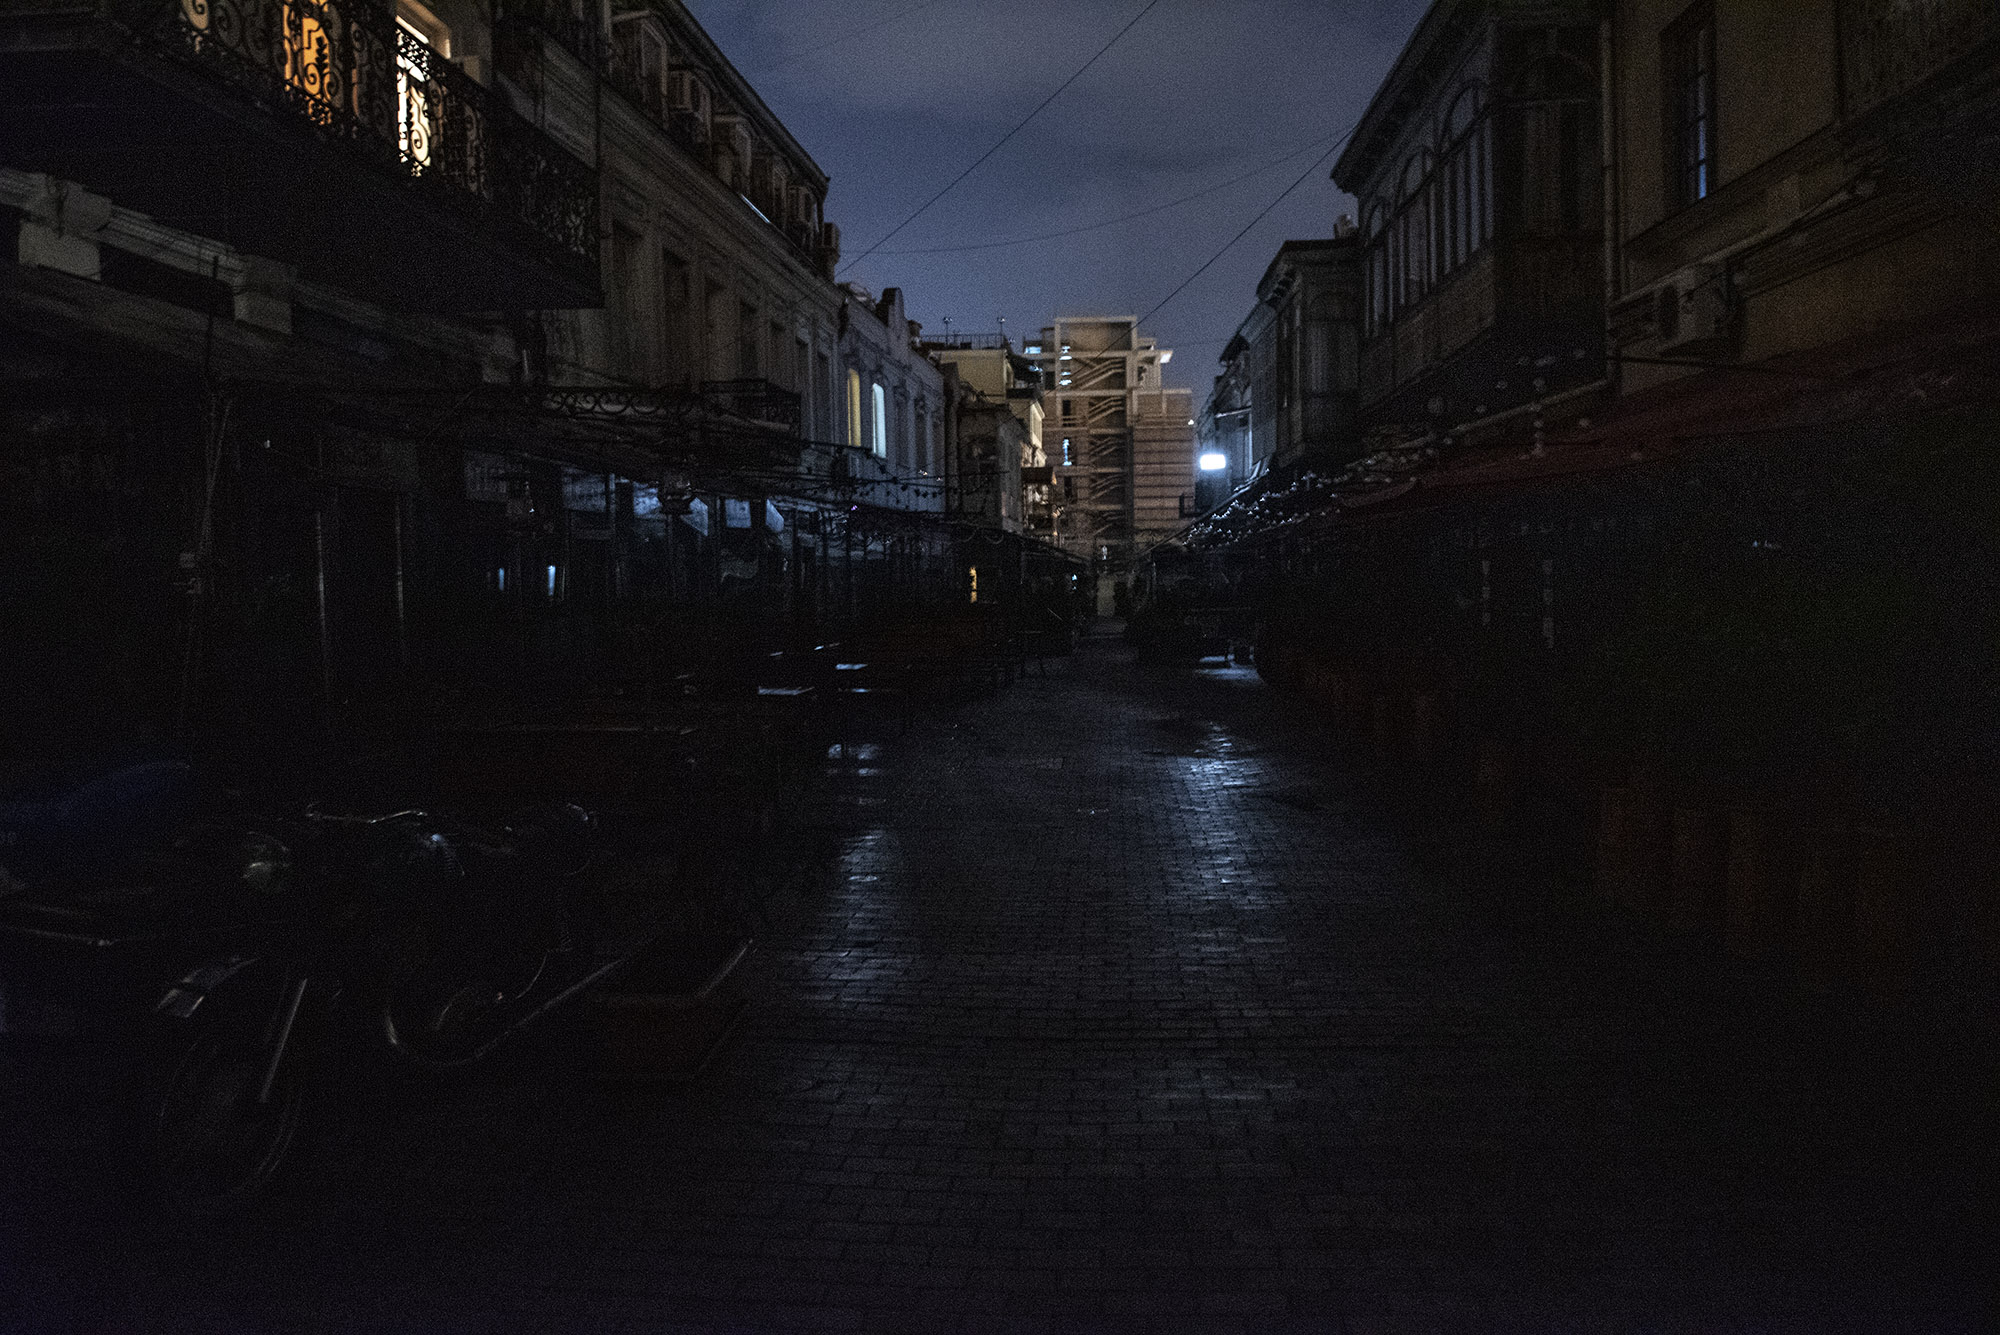 Shardeni Street, one of the most touristic streets in the old town, is now without lights during curfew hours. Photo: Mariam Nikuradze/OC Media